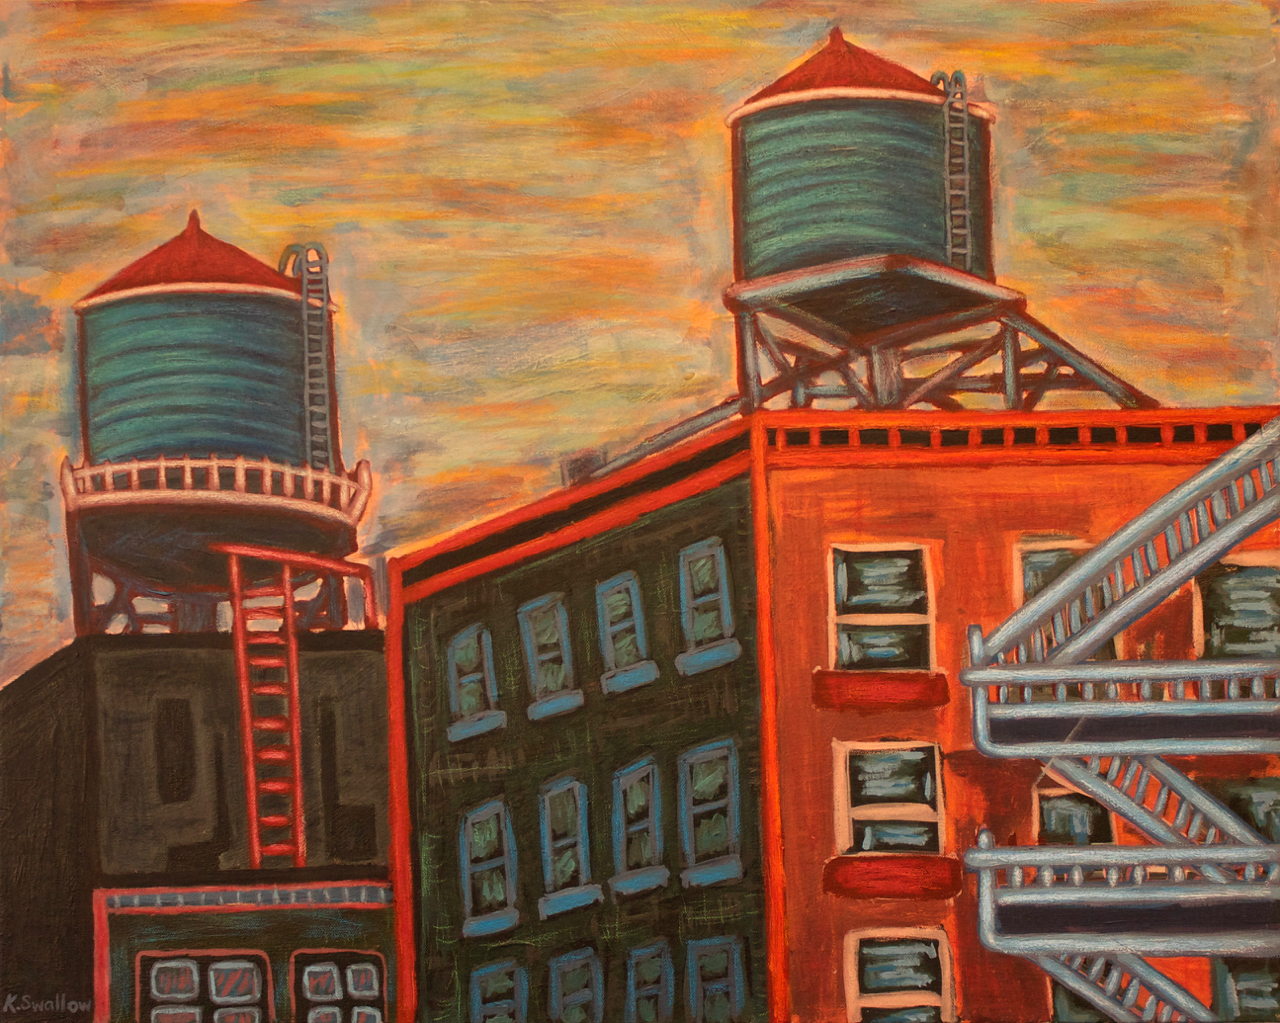 High Line View, West Chelsea (NYC), acrylic on canvas, 24x30, 2012, SOLD